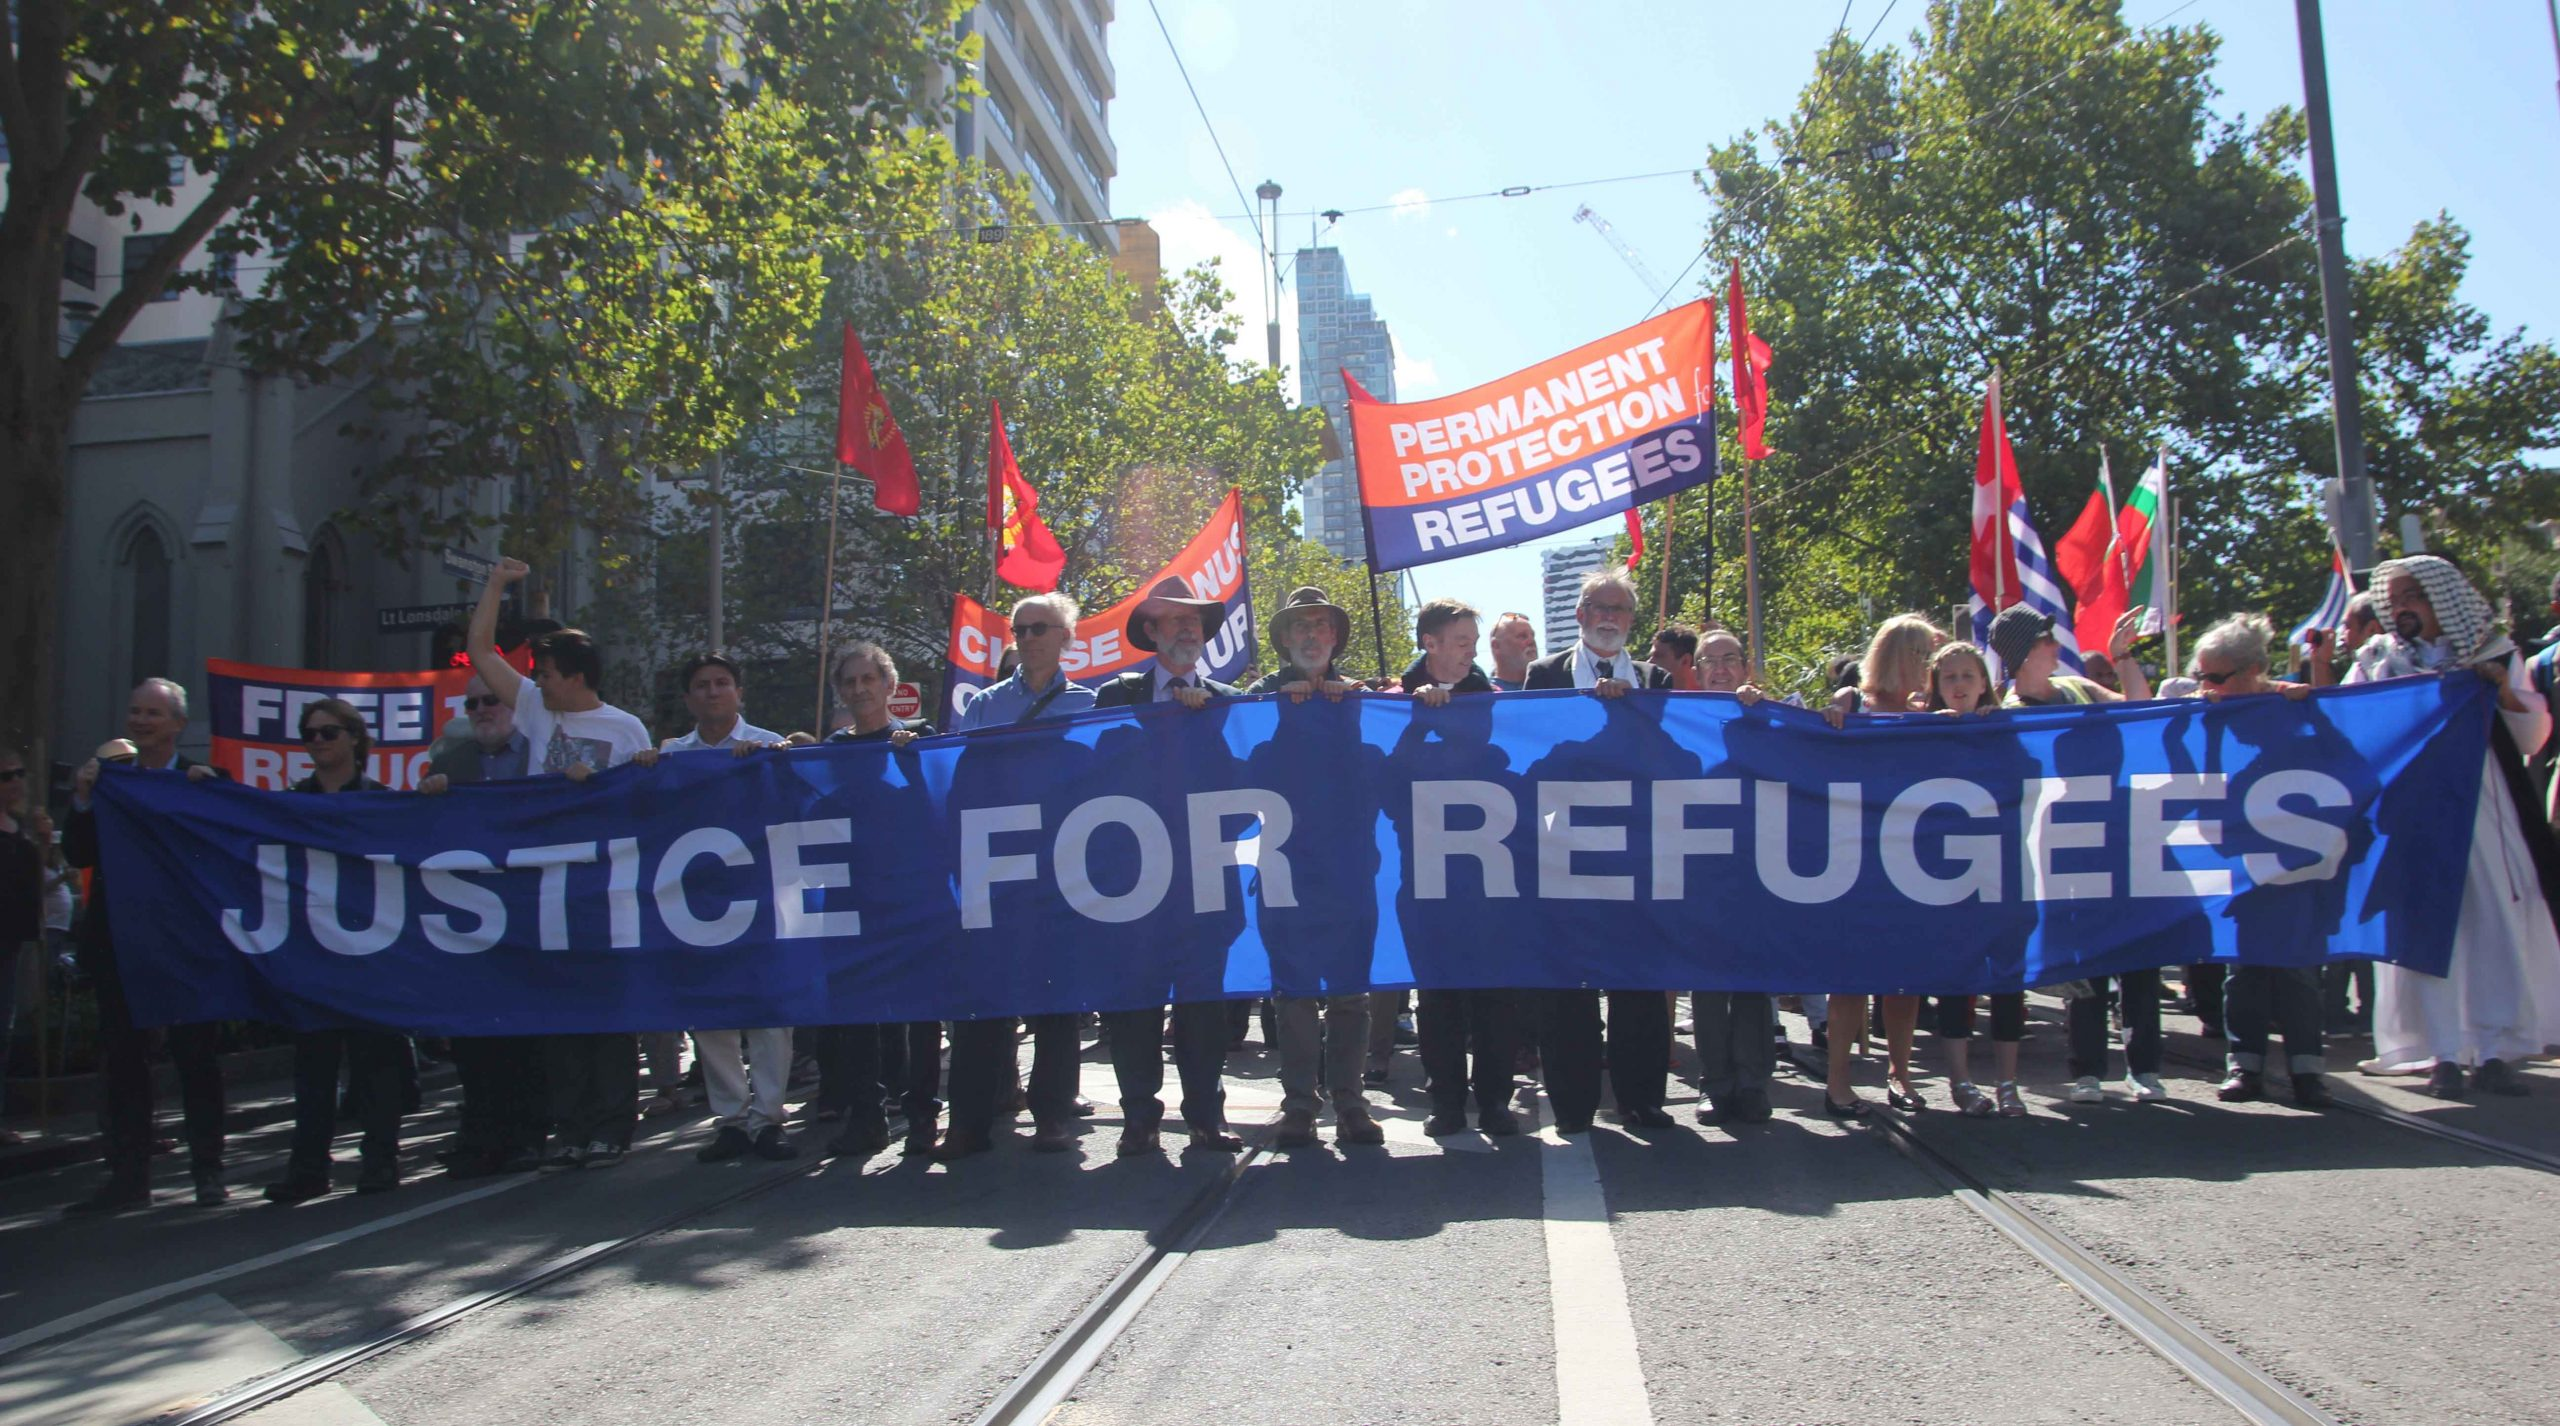 Couple protests and direct action to stop cruel refugee policies